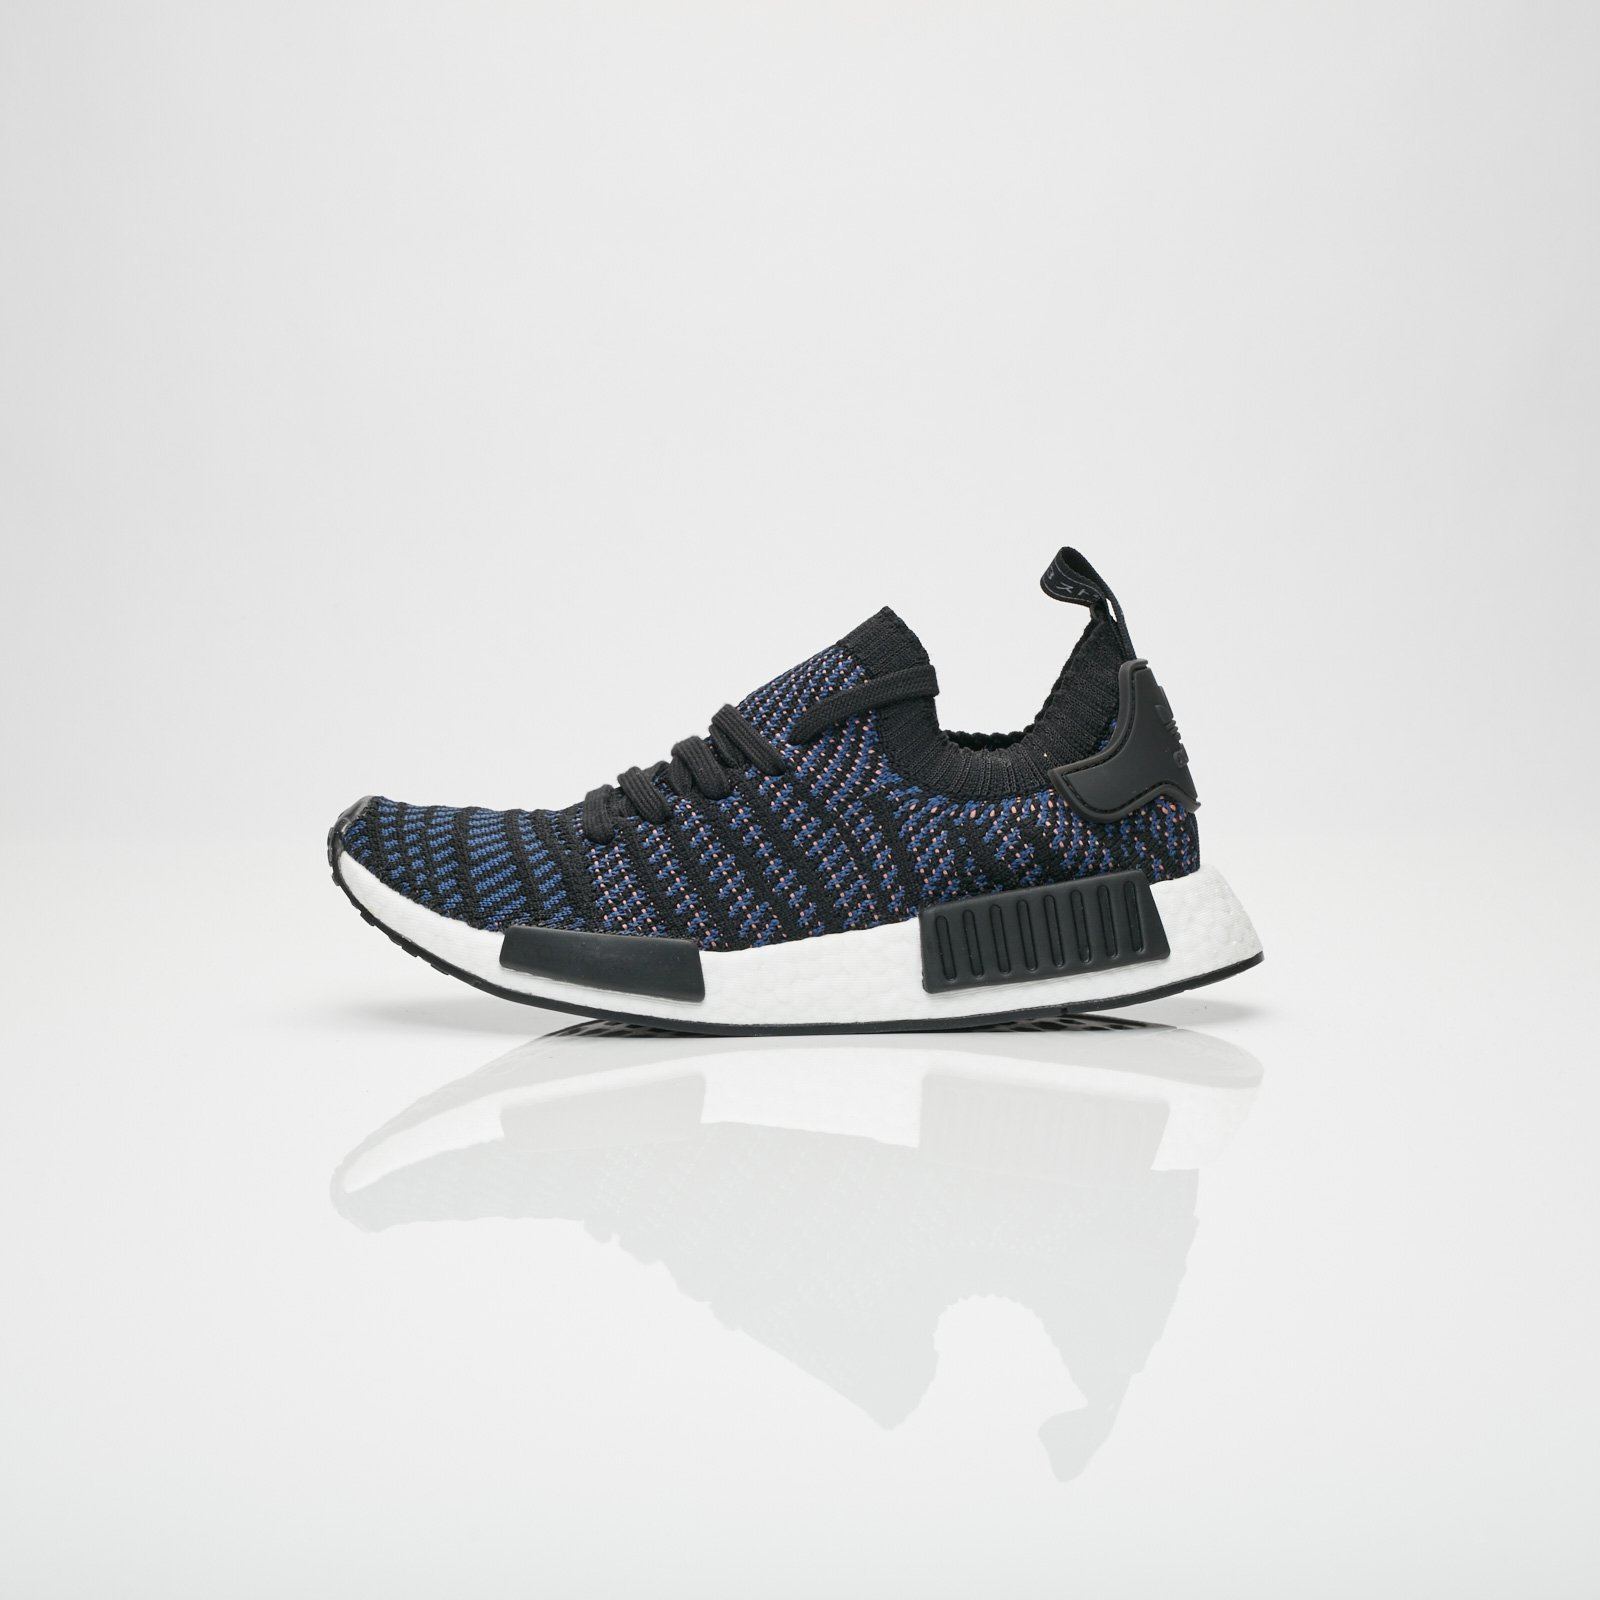 check out d6600 7cfaa ... adidas Originals NMD R1 STLT PK W ...